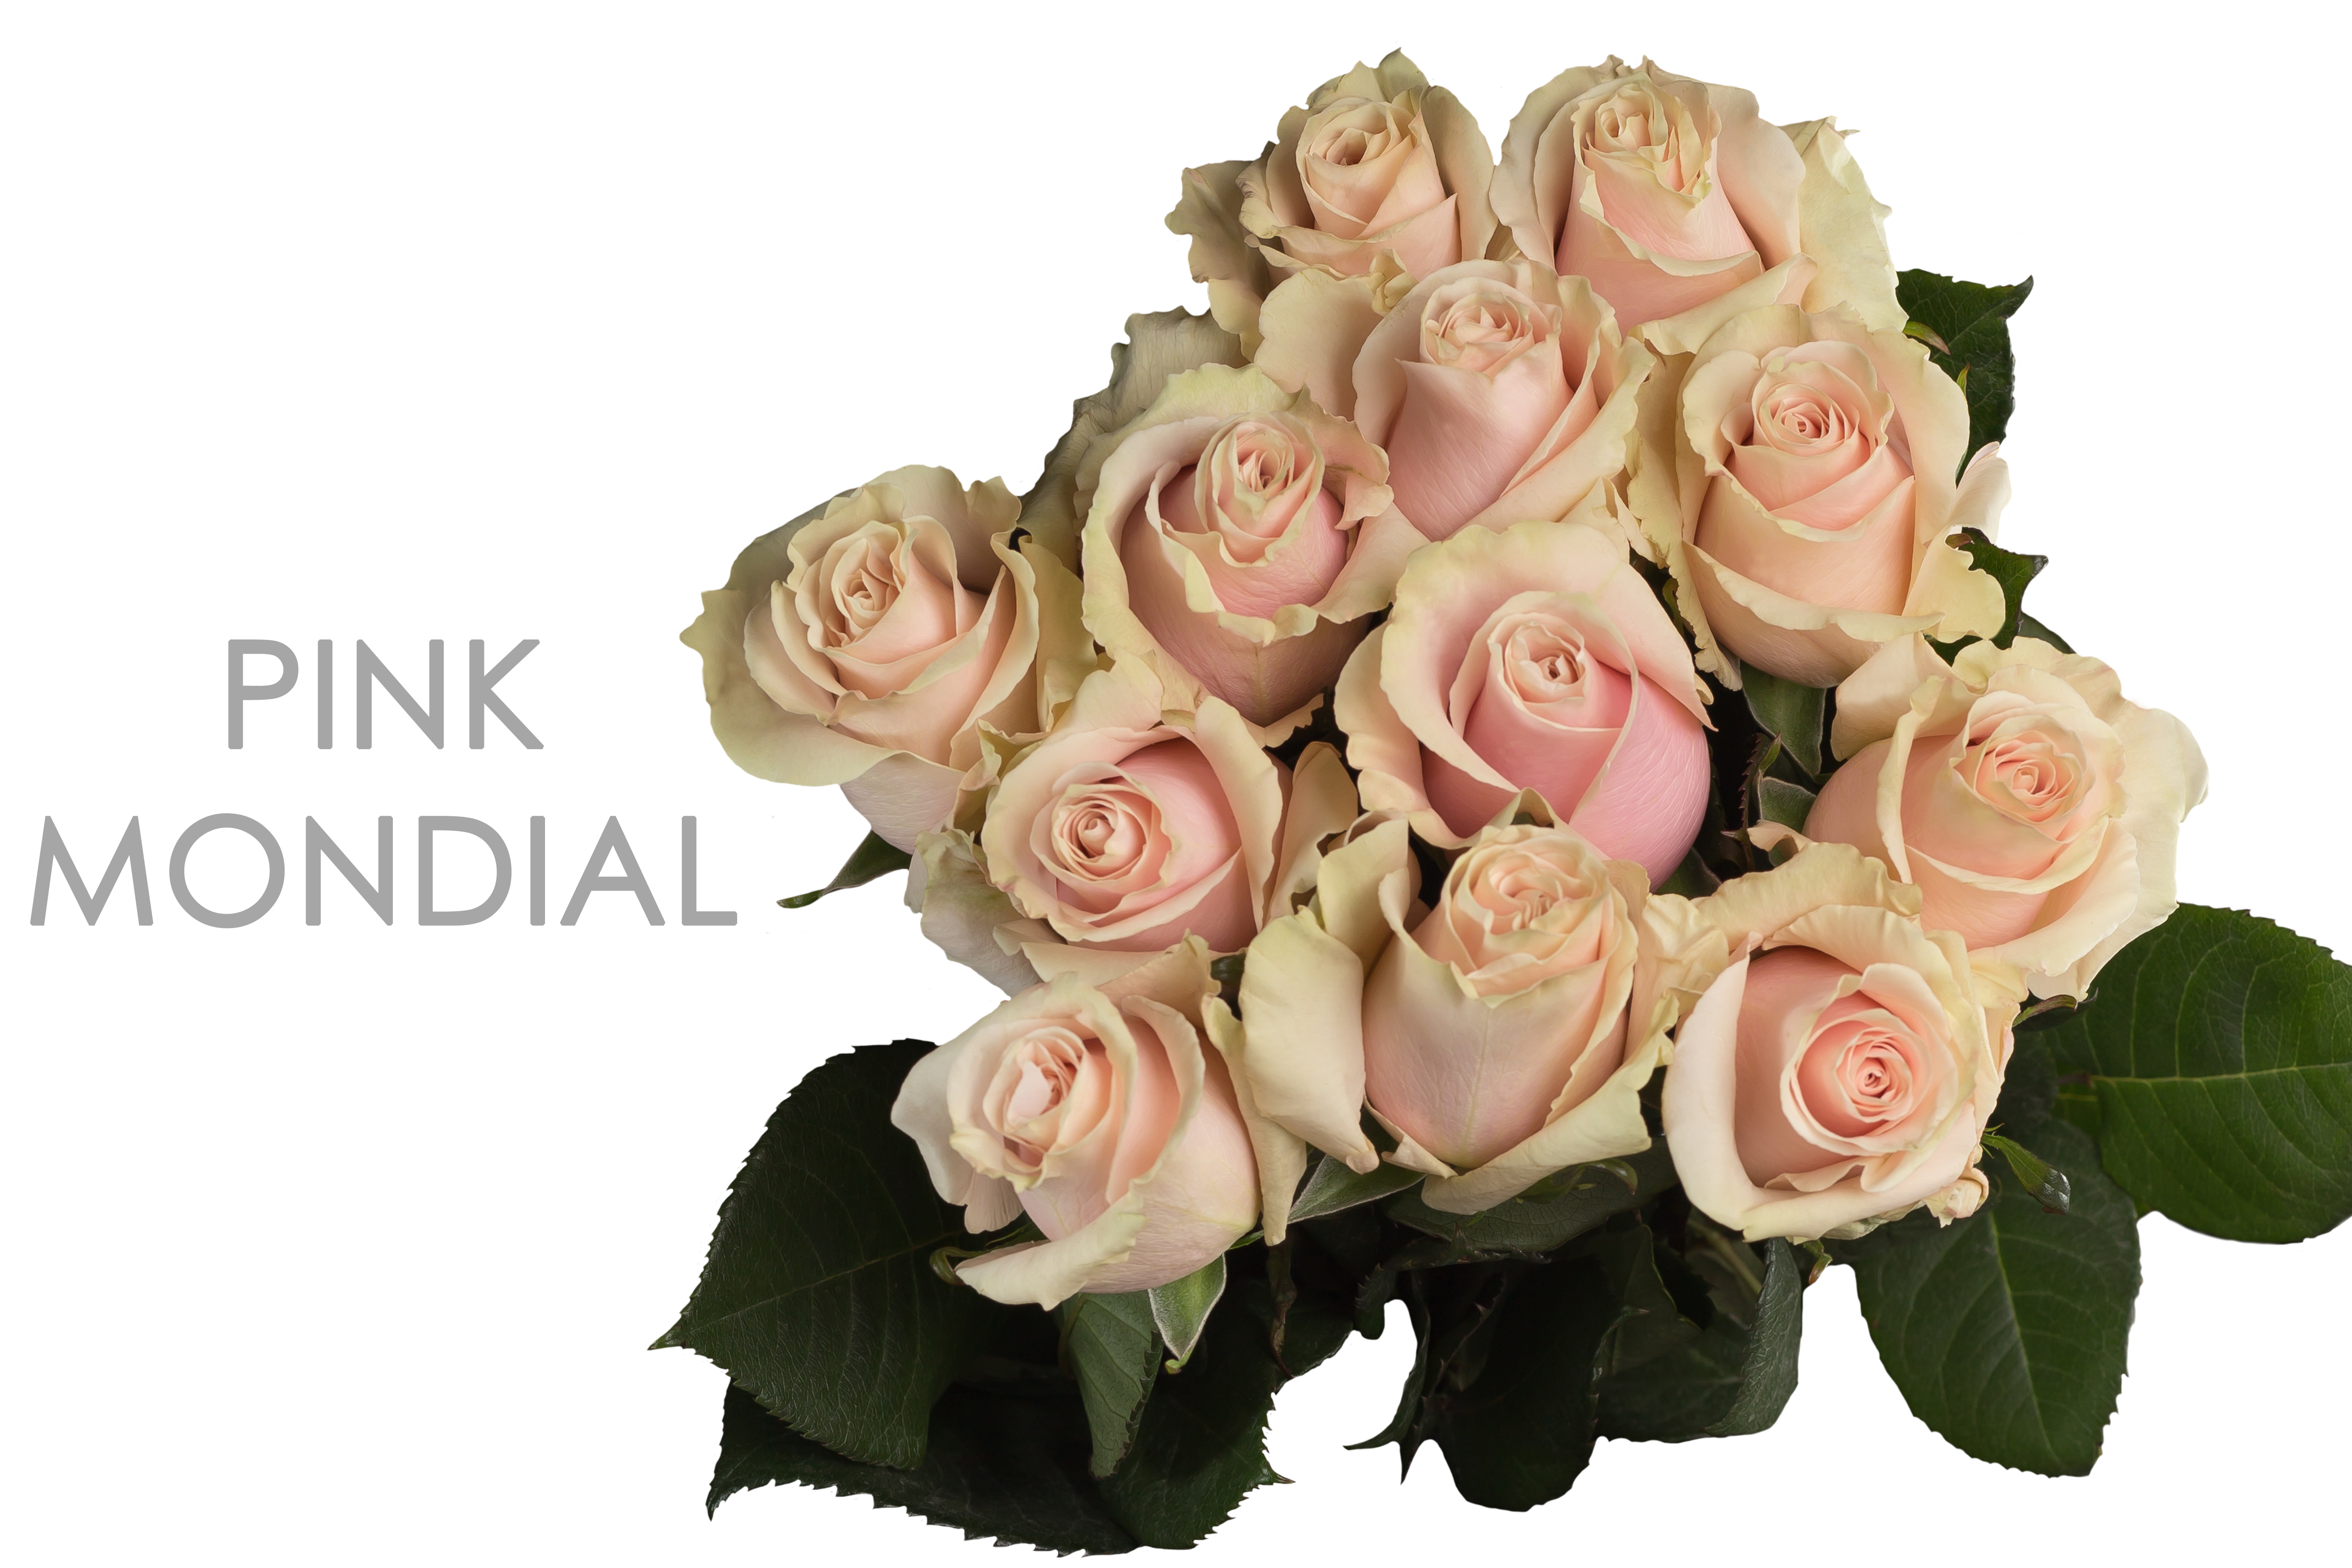 PINK-MONDIAL-CAPTION-BOUQUET